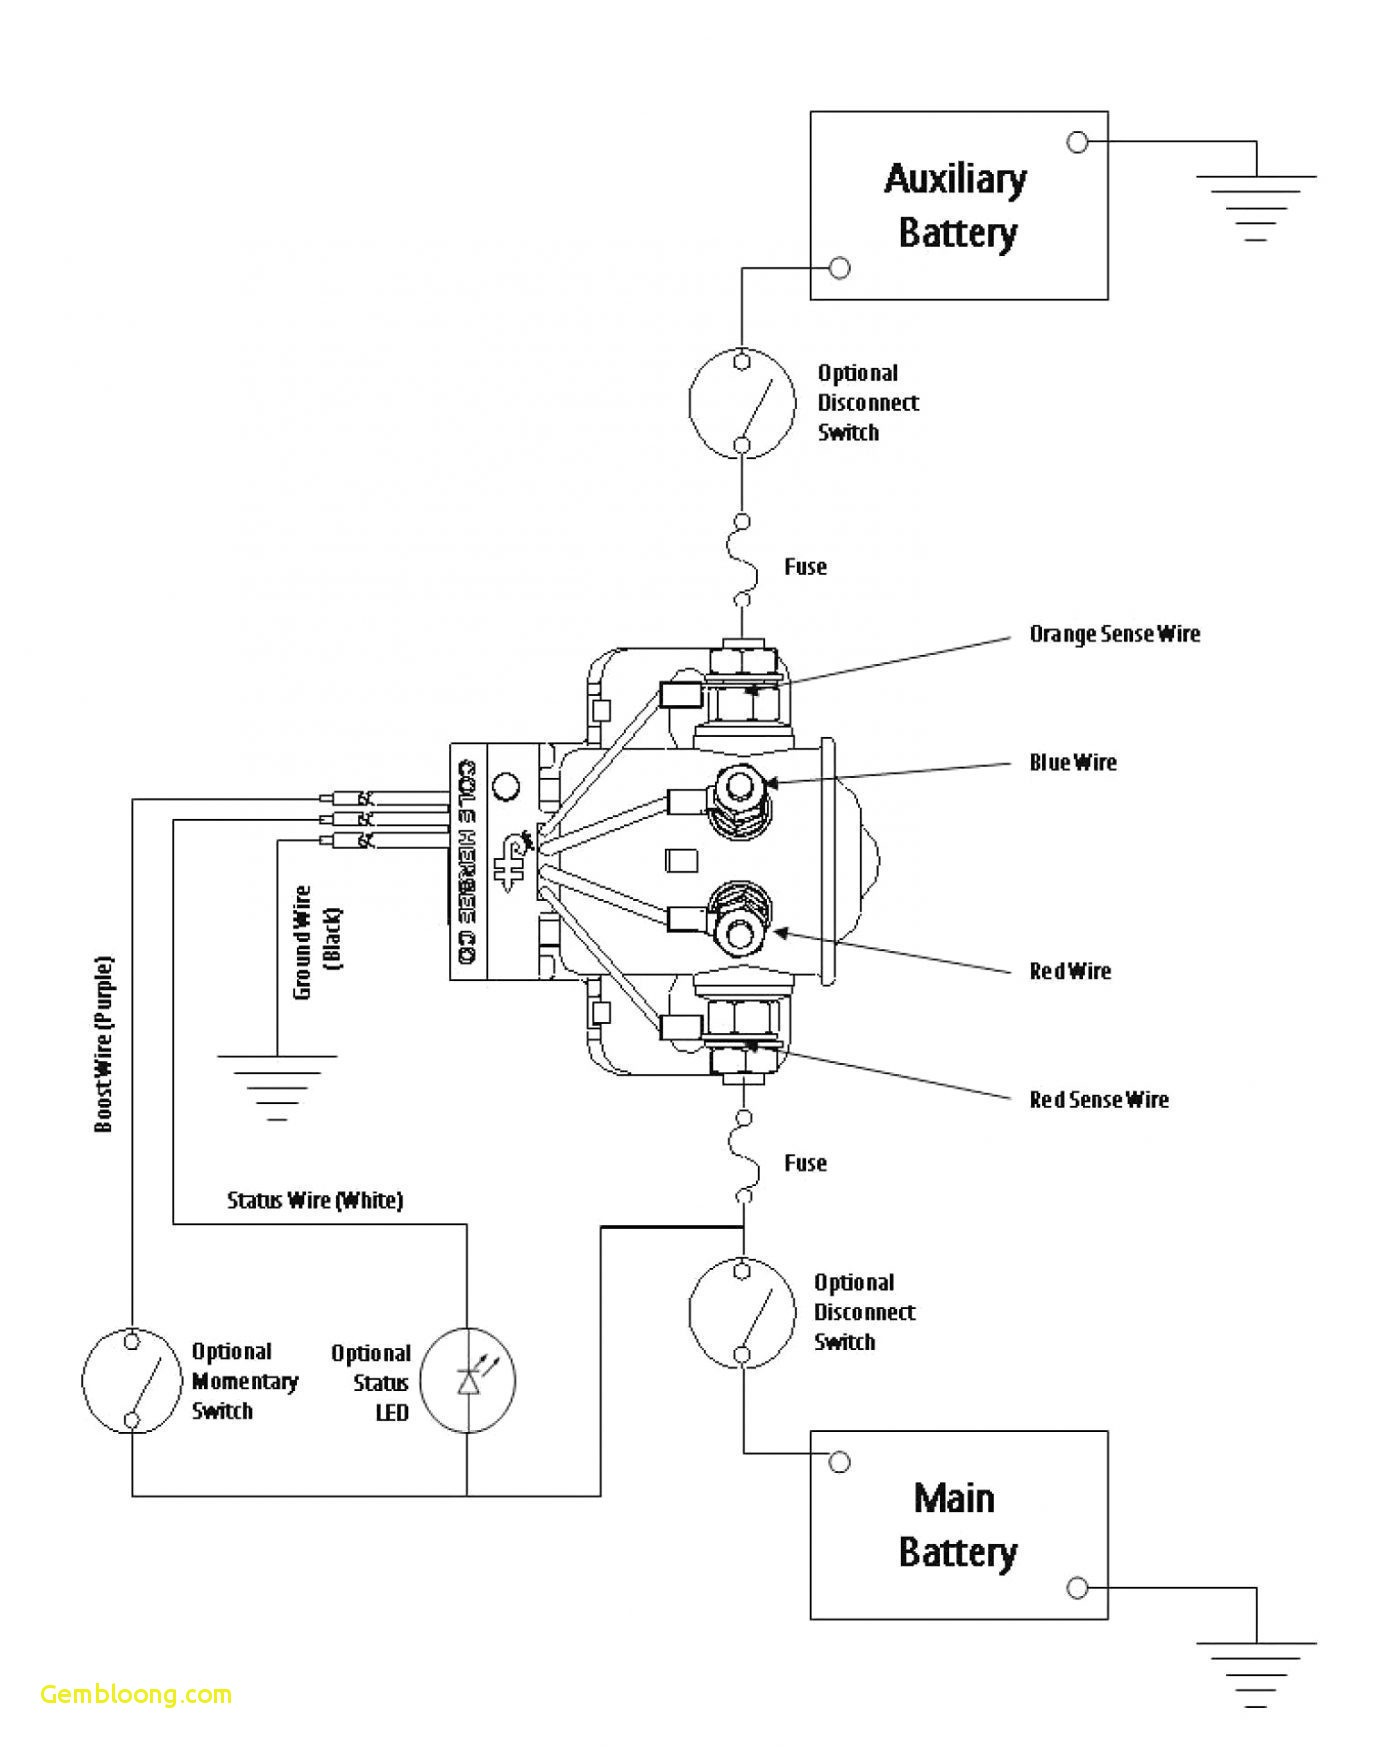 bmw ignition switch wiring diagram fm 8084  wiring diagram e36 schematic wiring  wiring diagram e36 schematic wiring